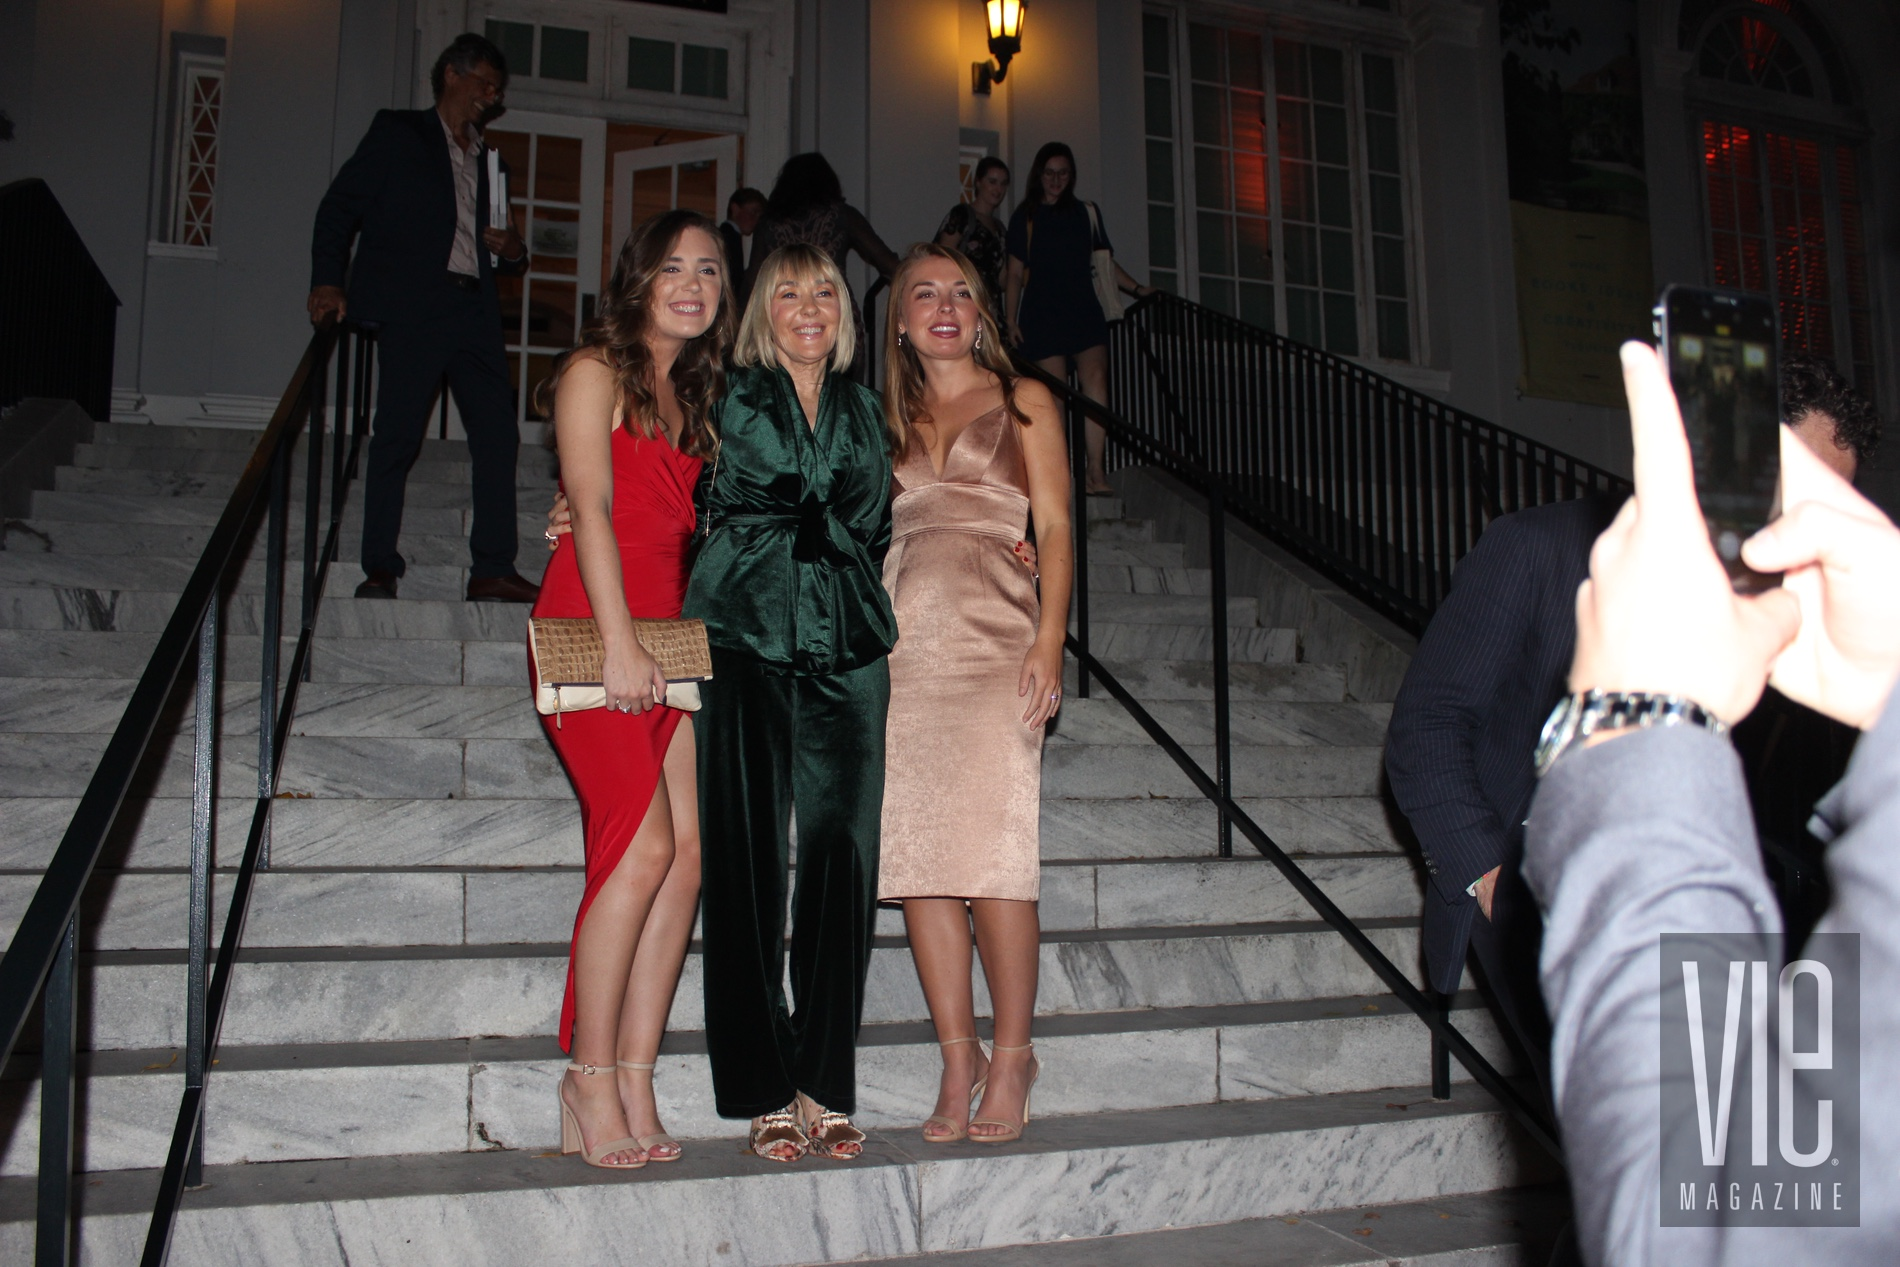 VIE magazine Abigail Ryan, Lisa Burwell, and Meghan Ryan on the steps at Charleston Library Society